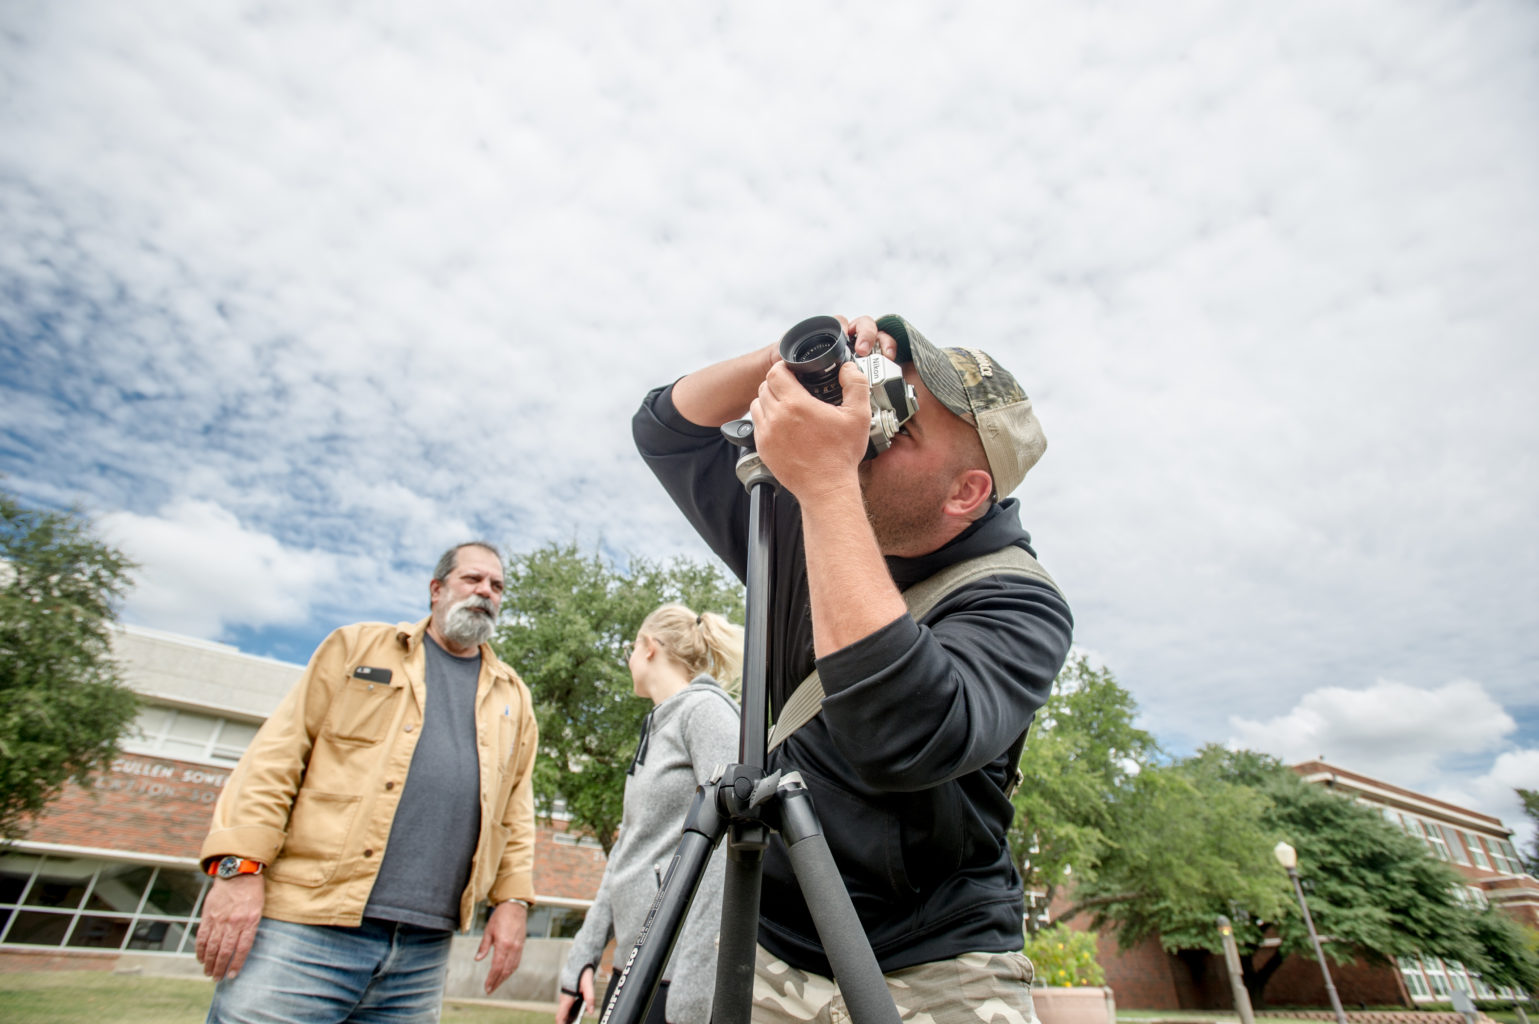 man shooting photos with an older man and woman in the background.